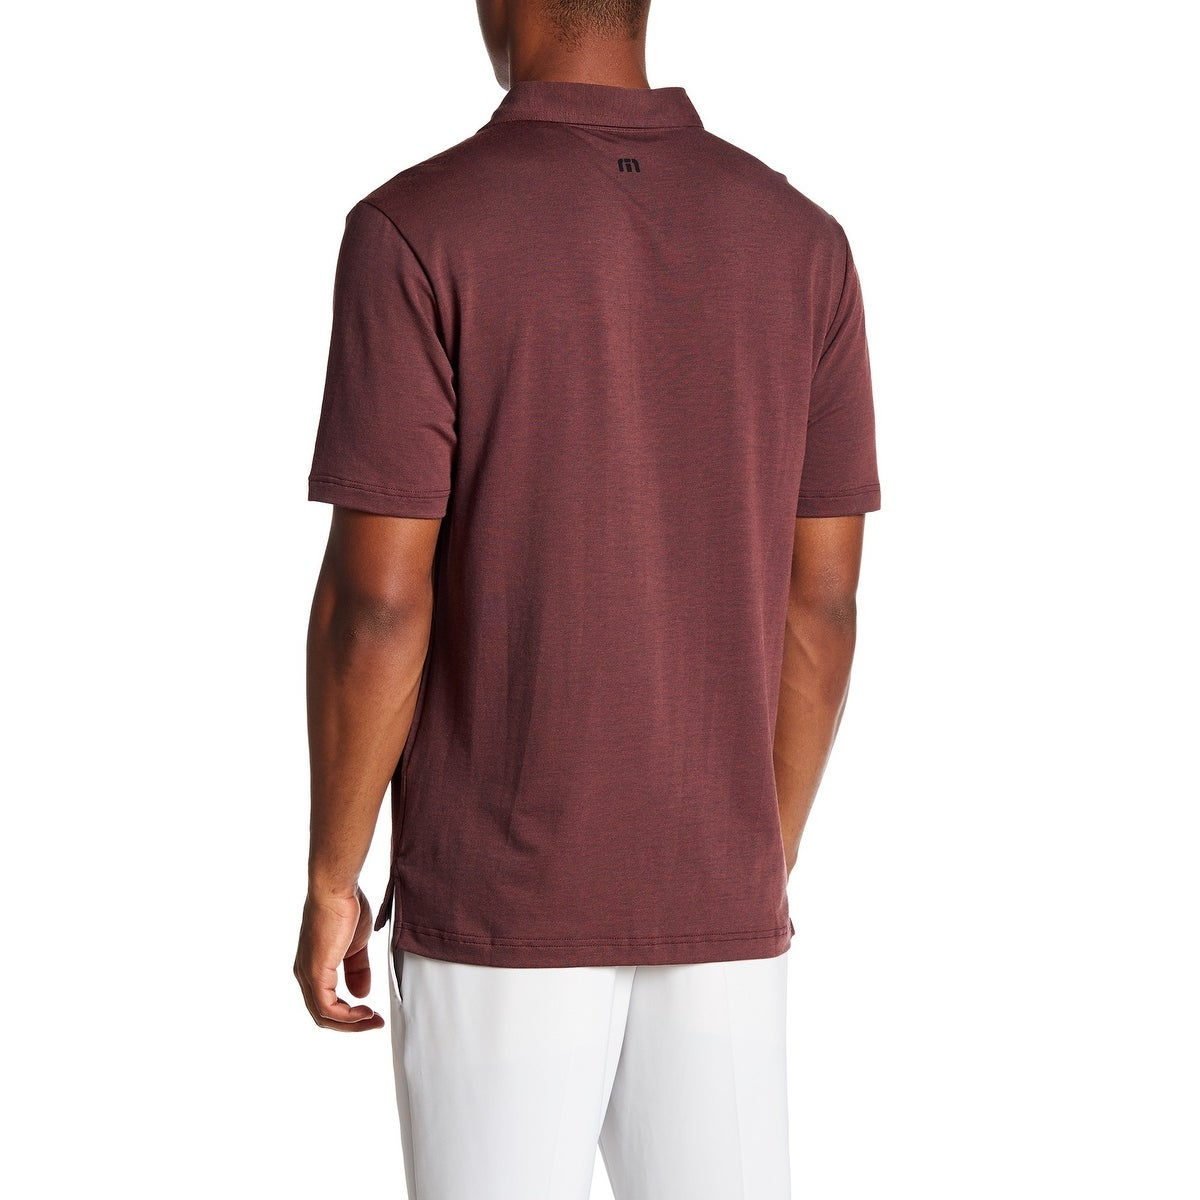 bcaf44a8e Shop TRAVIS MATHEW NEW Red Mens Size Small S Surs Slim Fit Golf Polo Shirt  - Free Shipping On Orders Over $45 - Overstock - 20711662